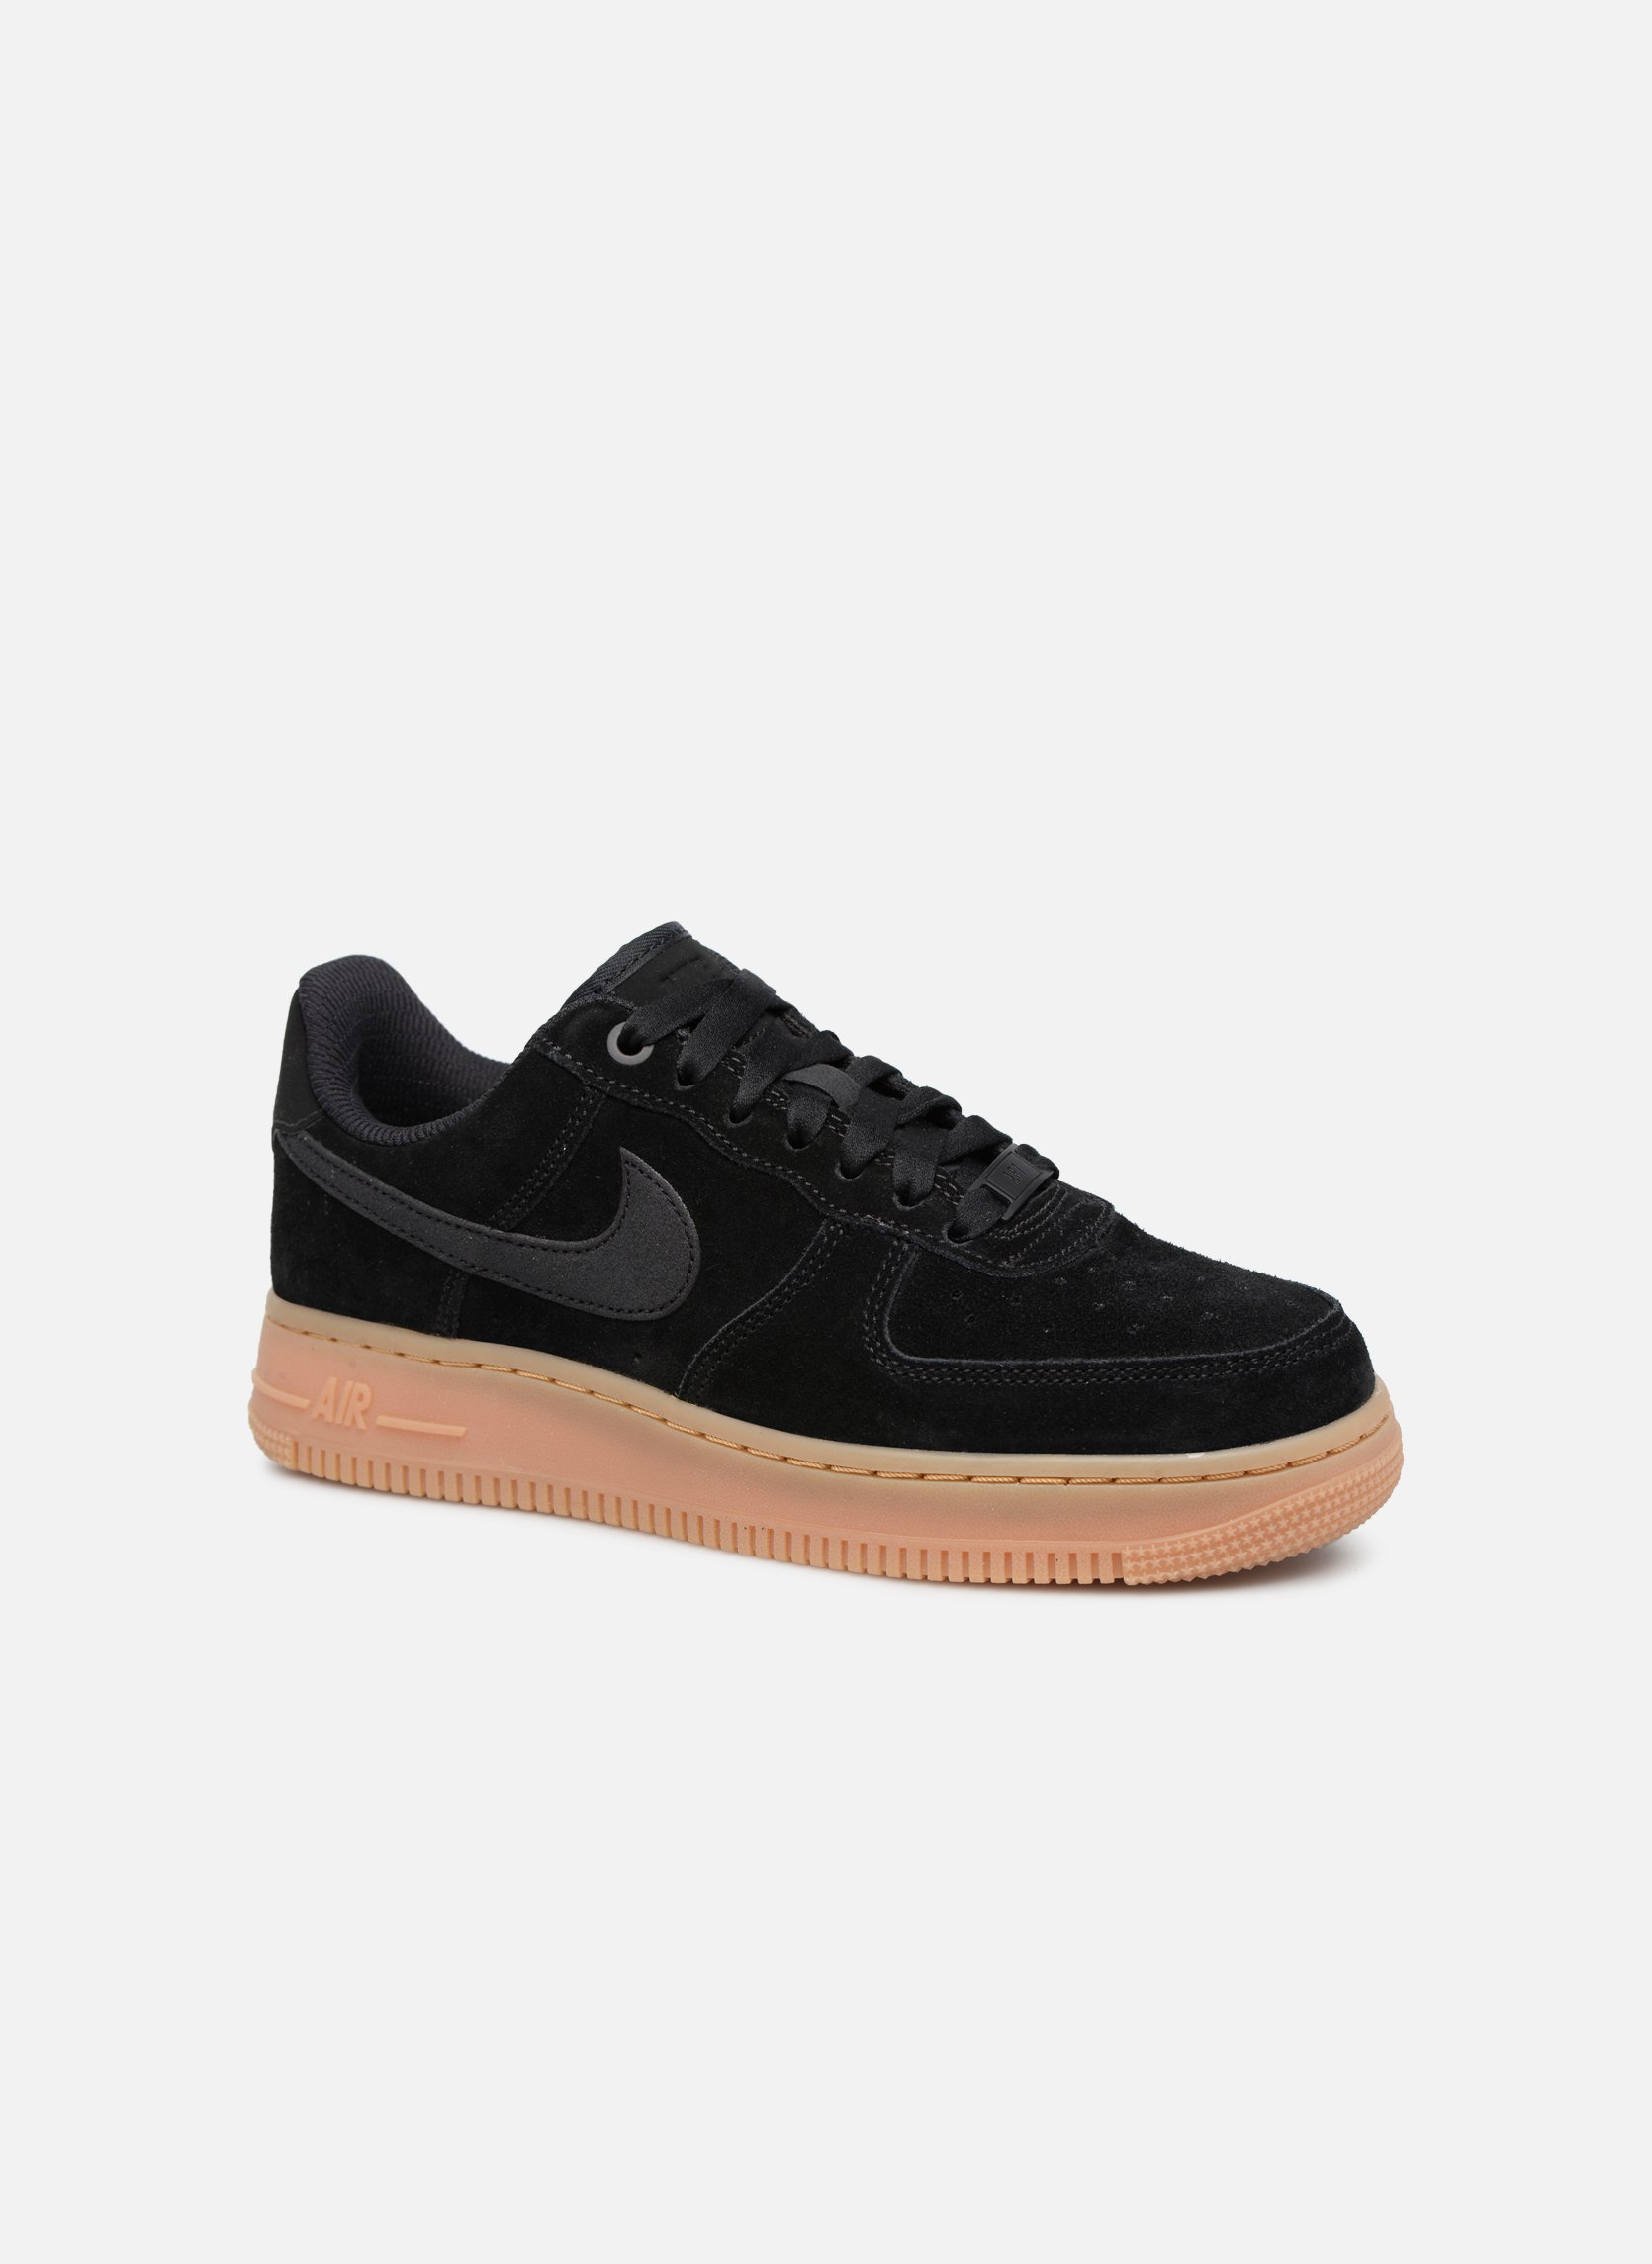 Wmns Air Force 1 '07 Se Black/Black-Gum Med Brown-Ivory